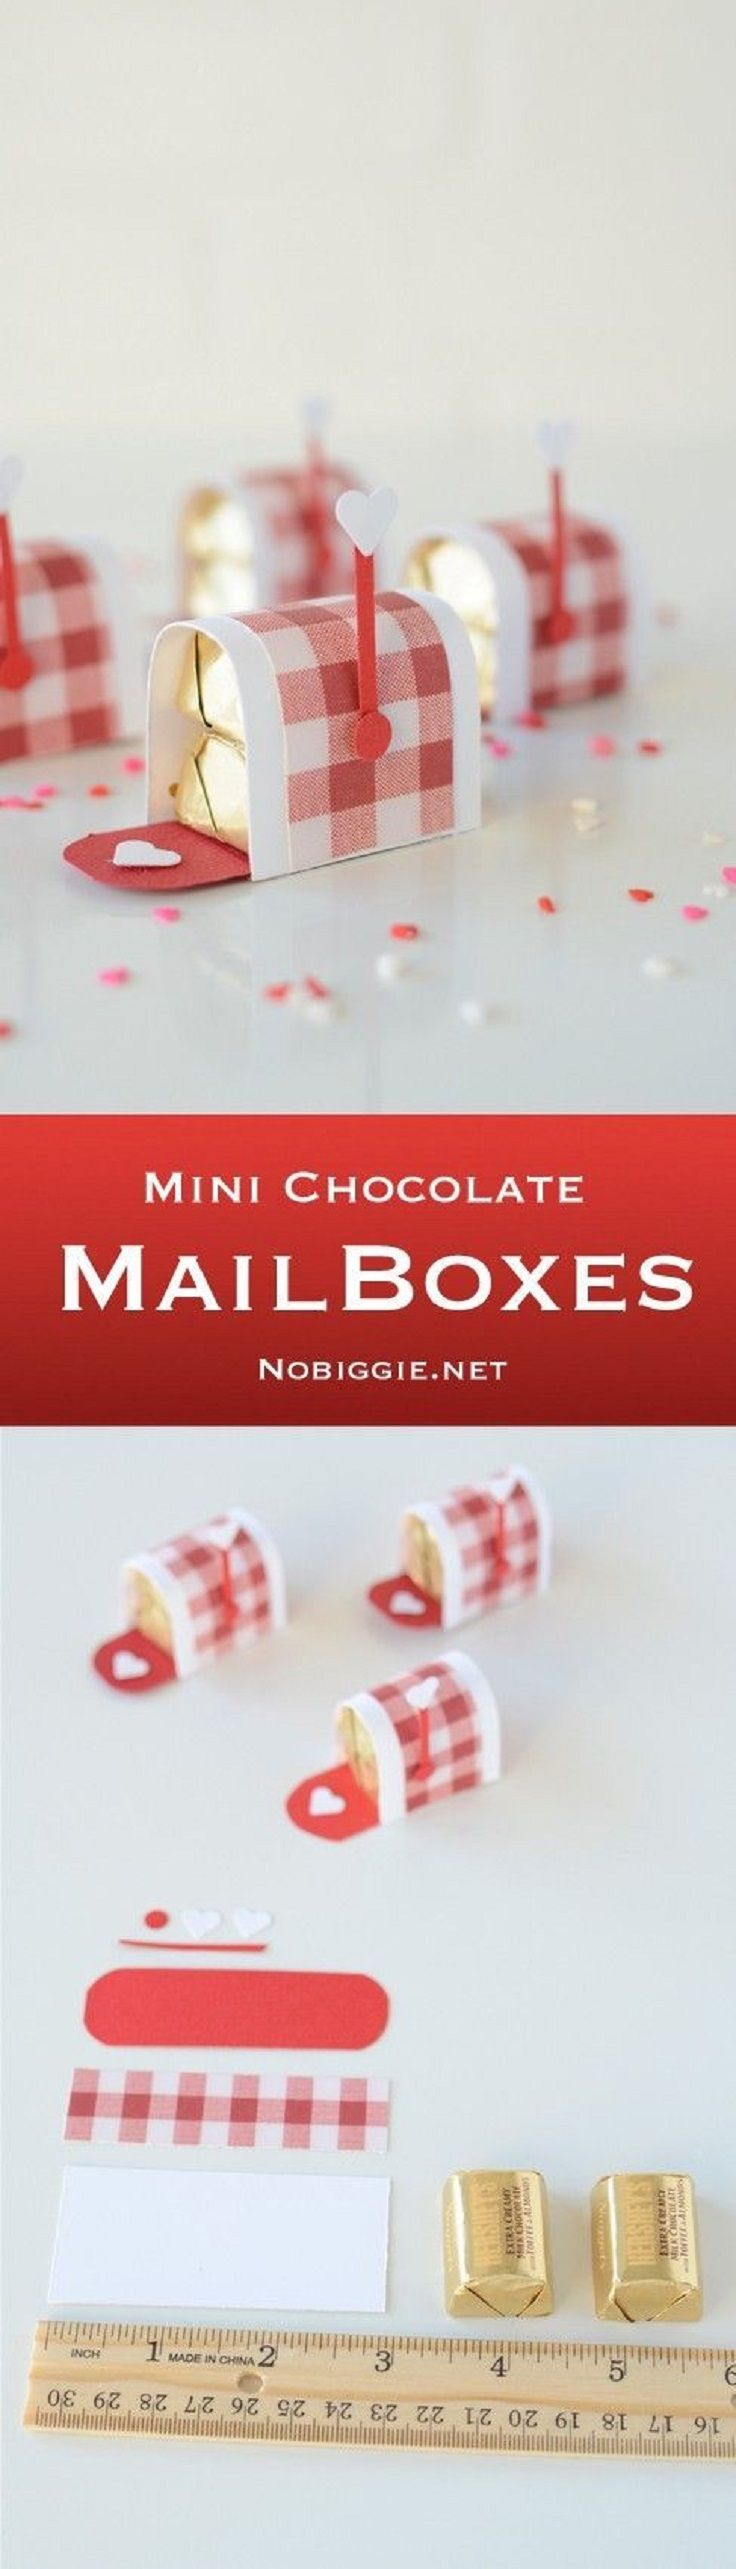 Best mom cushion cover valentineblog net - Mini Chocolate Mailboxes 14 Amorous Valentine S Day Treats For All Love Birds